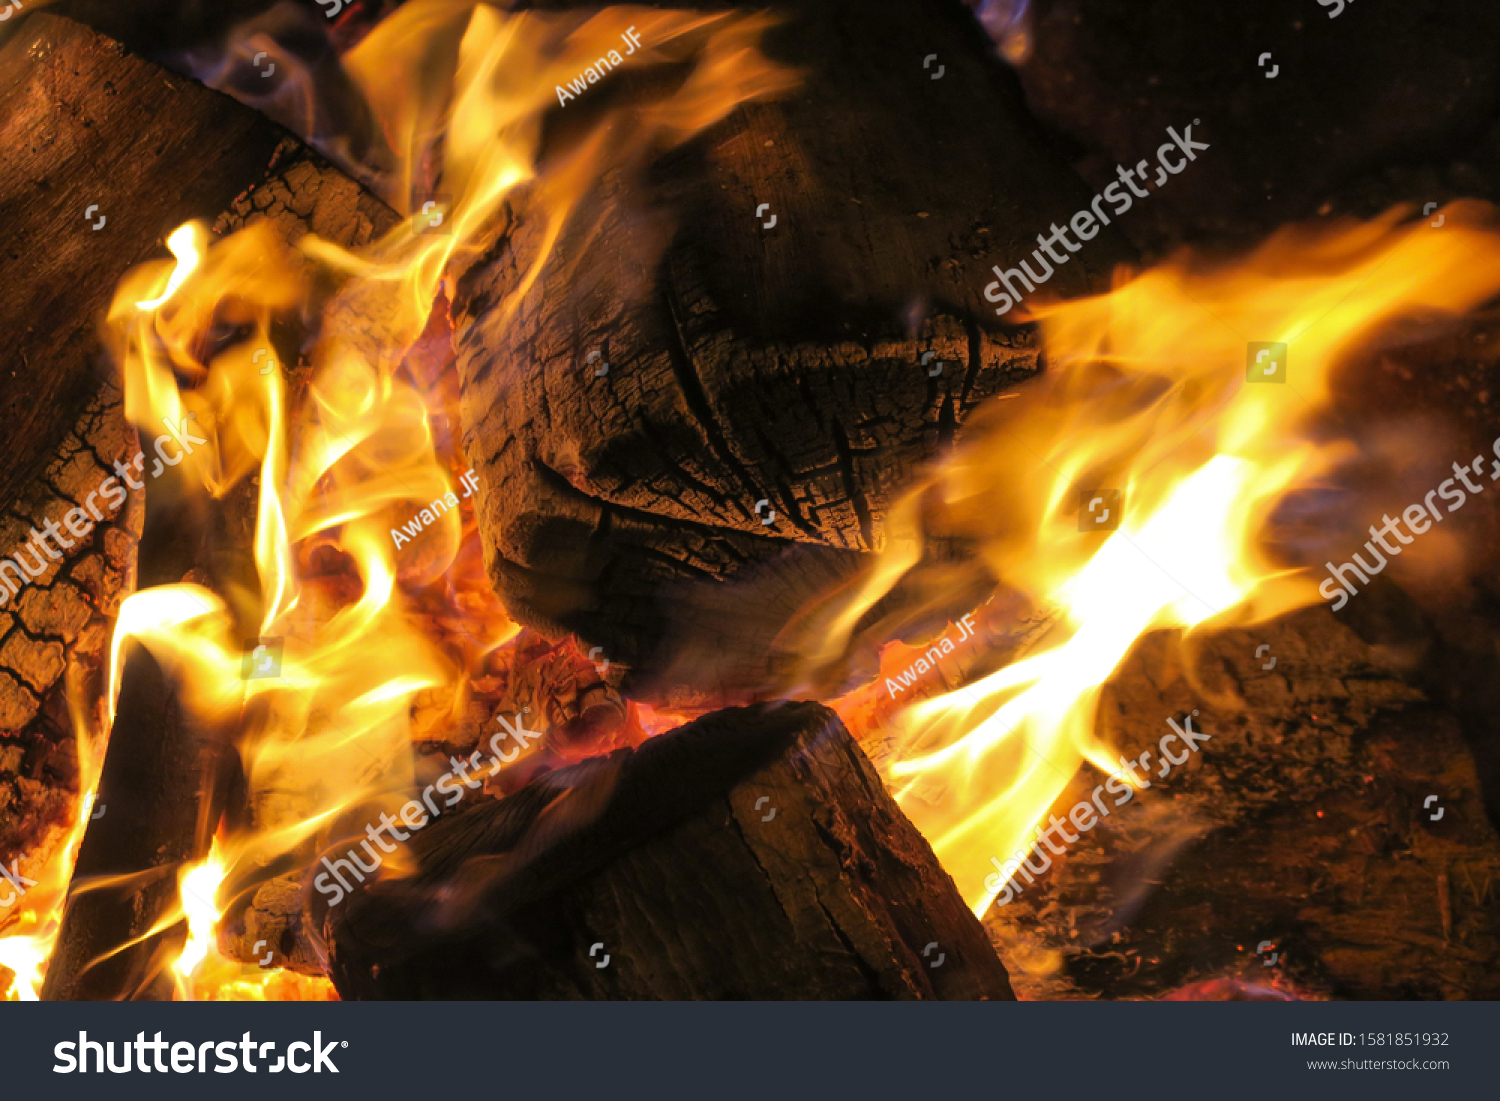 Closeup of burning flames in a camp fire